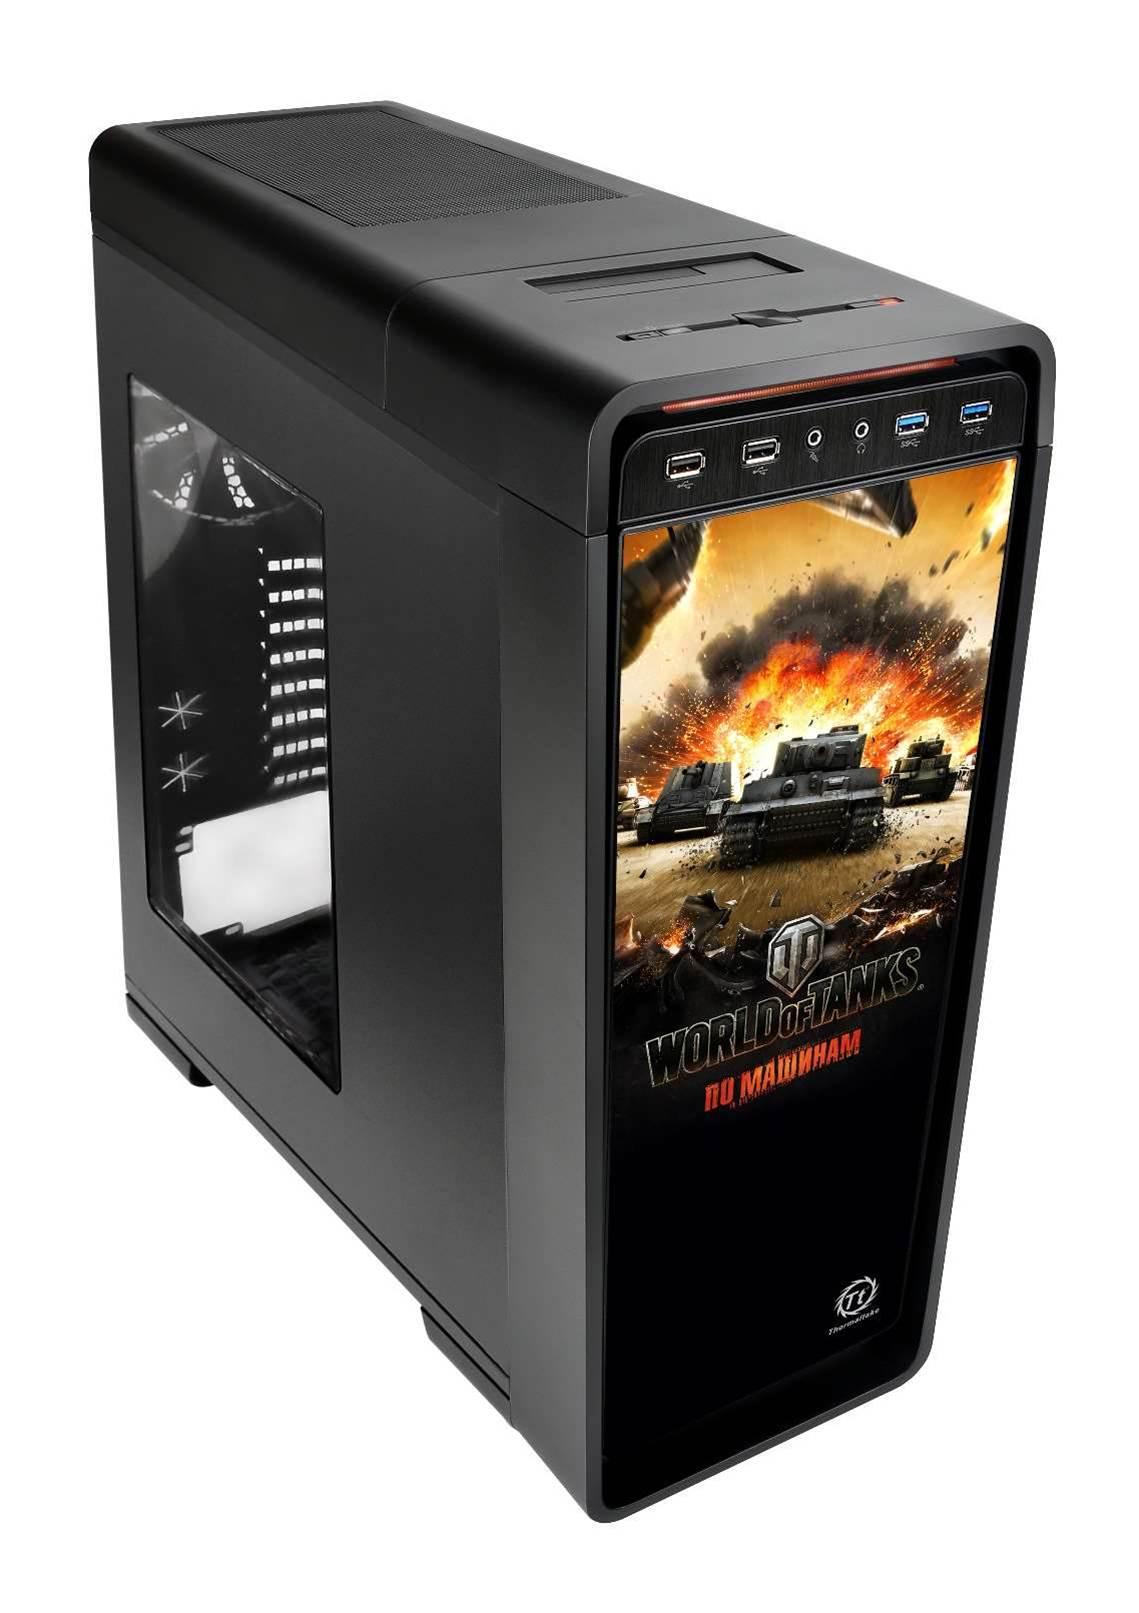 New ThermalTake case aimed at World of Tanks die-hards